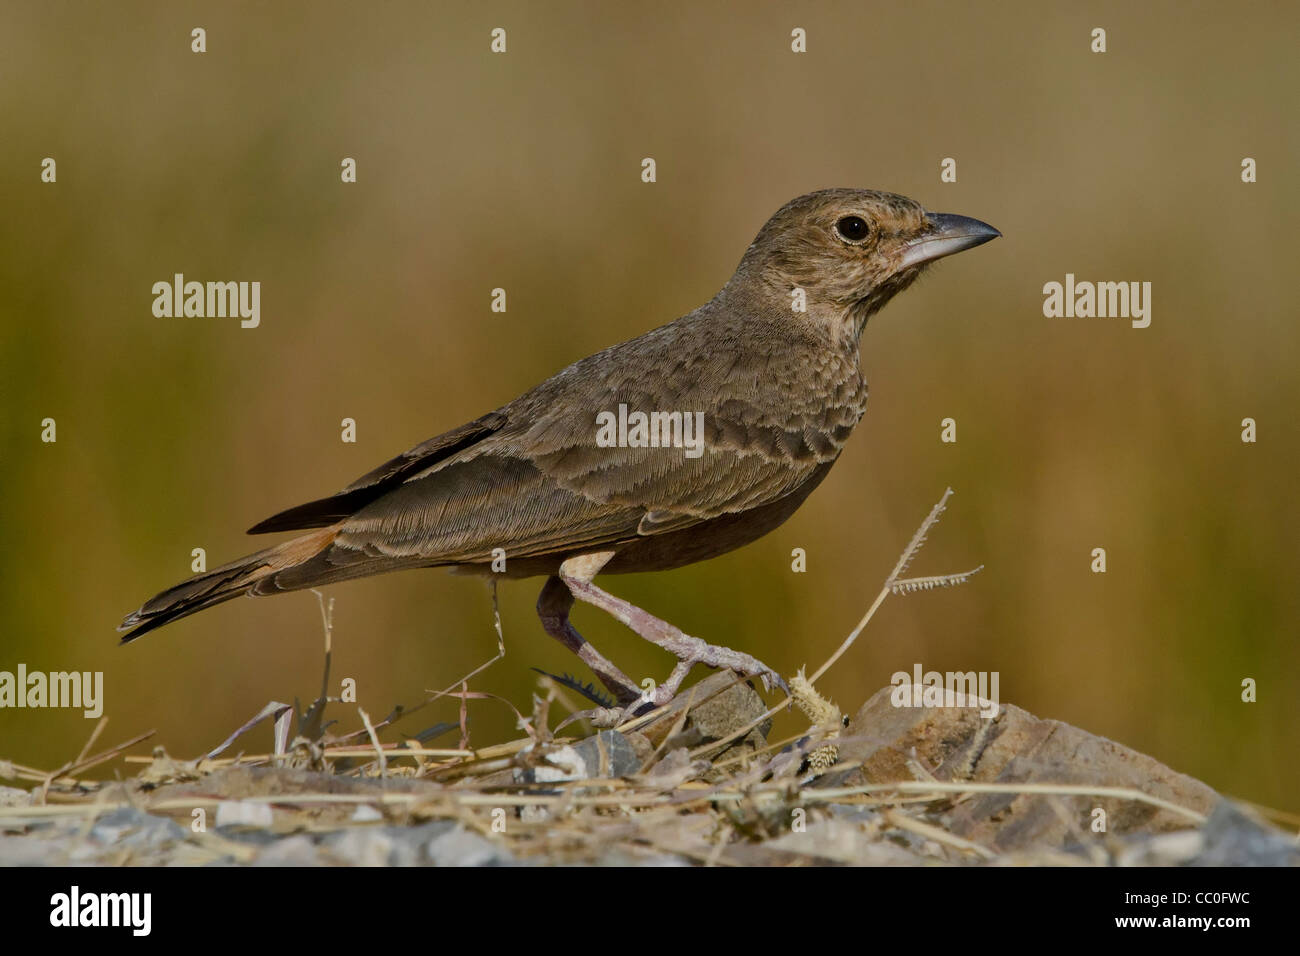 Rufous-tailed lark or Rufous-tailed Finch-Lark - Stock Image